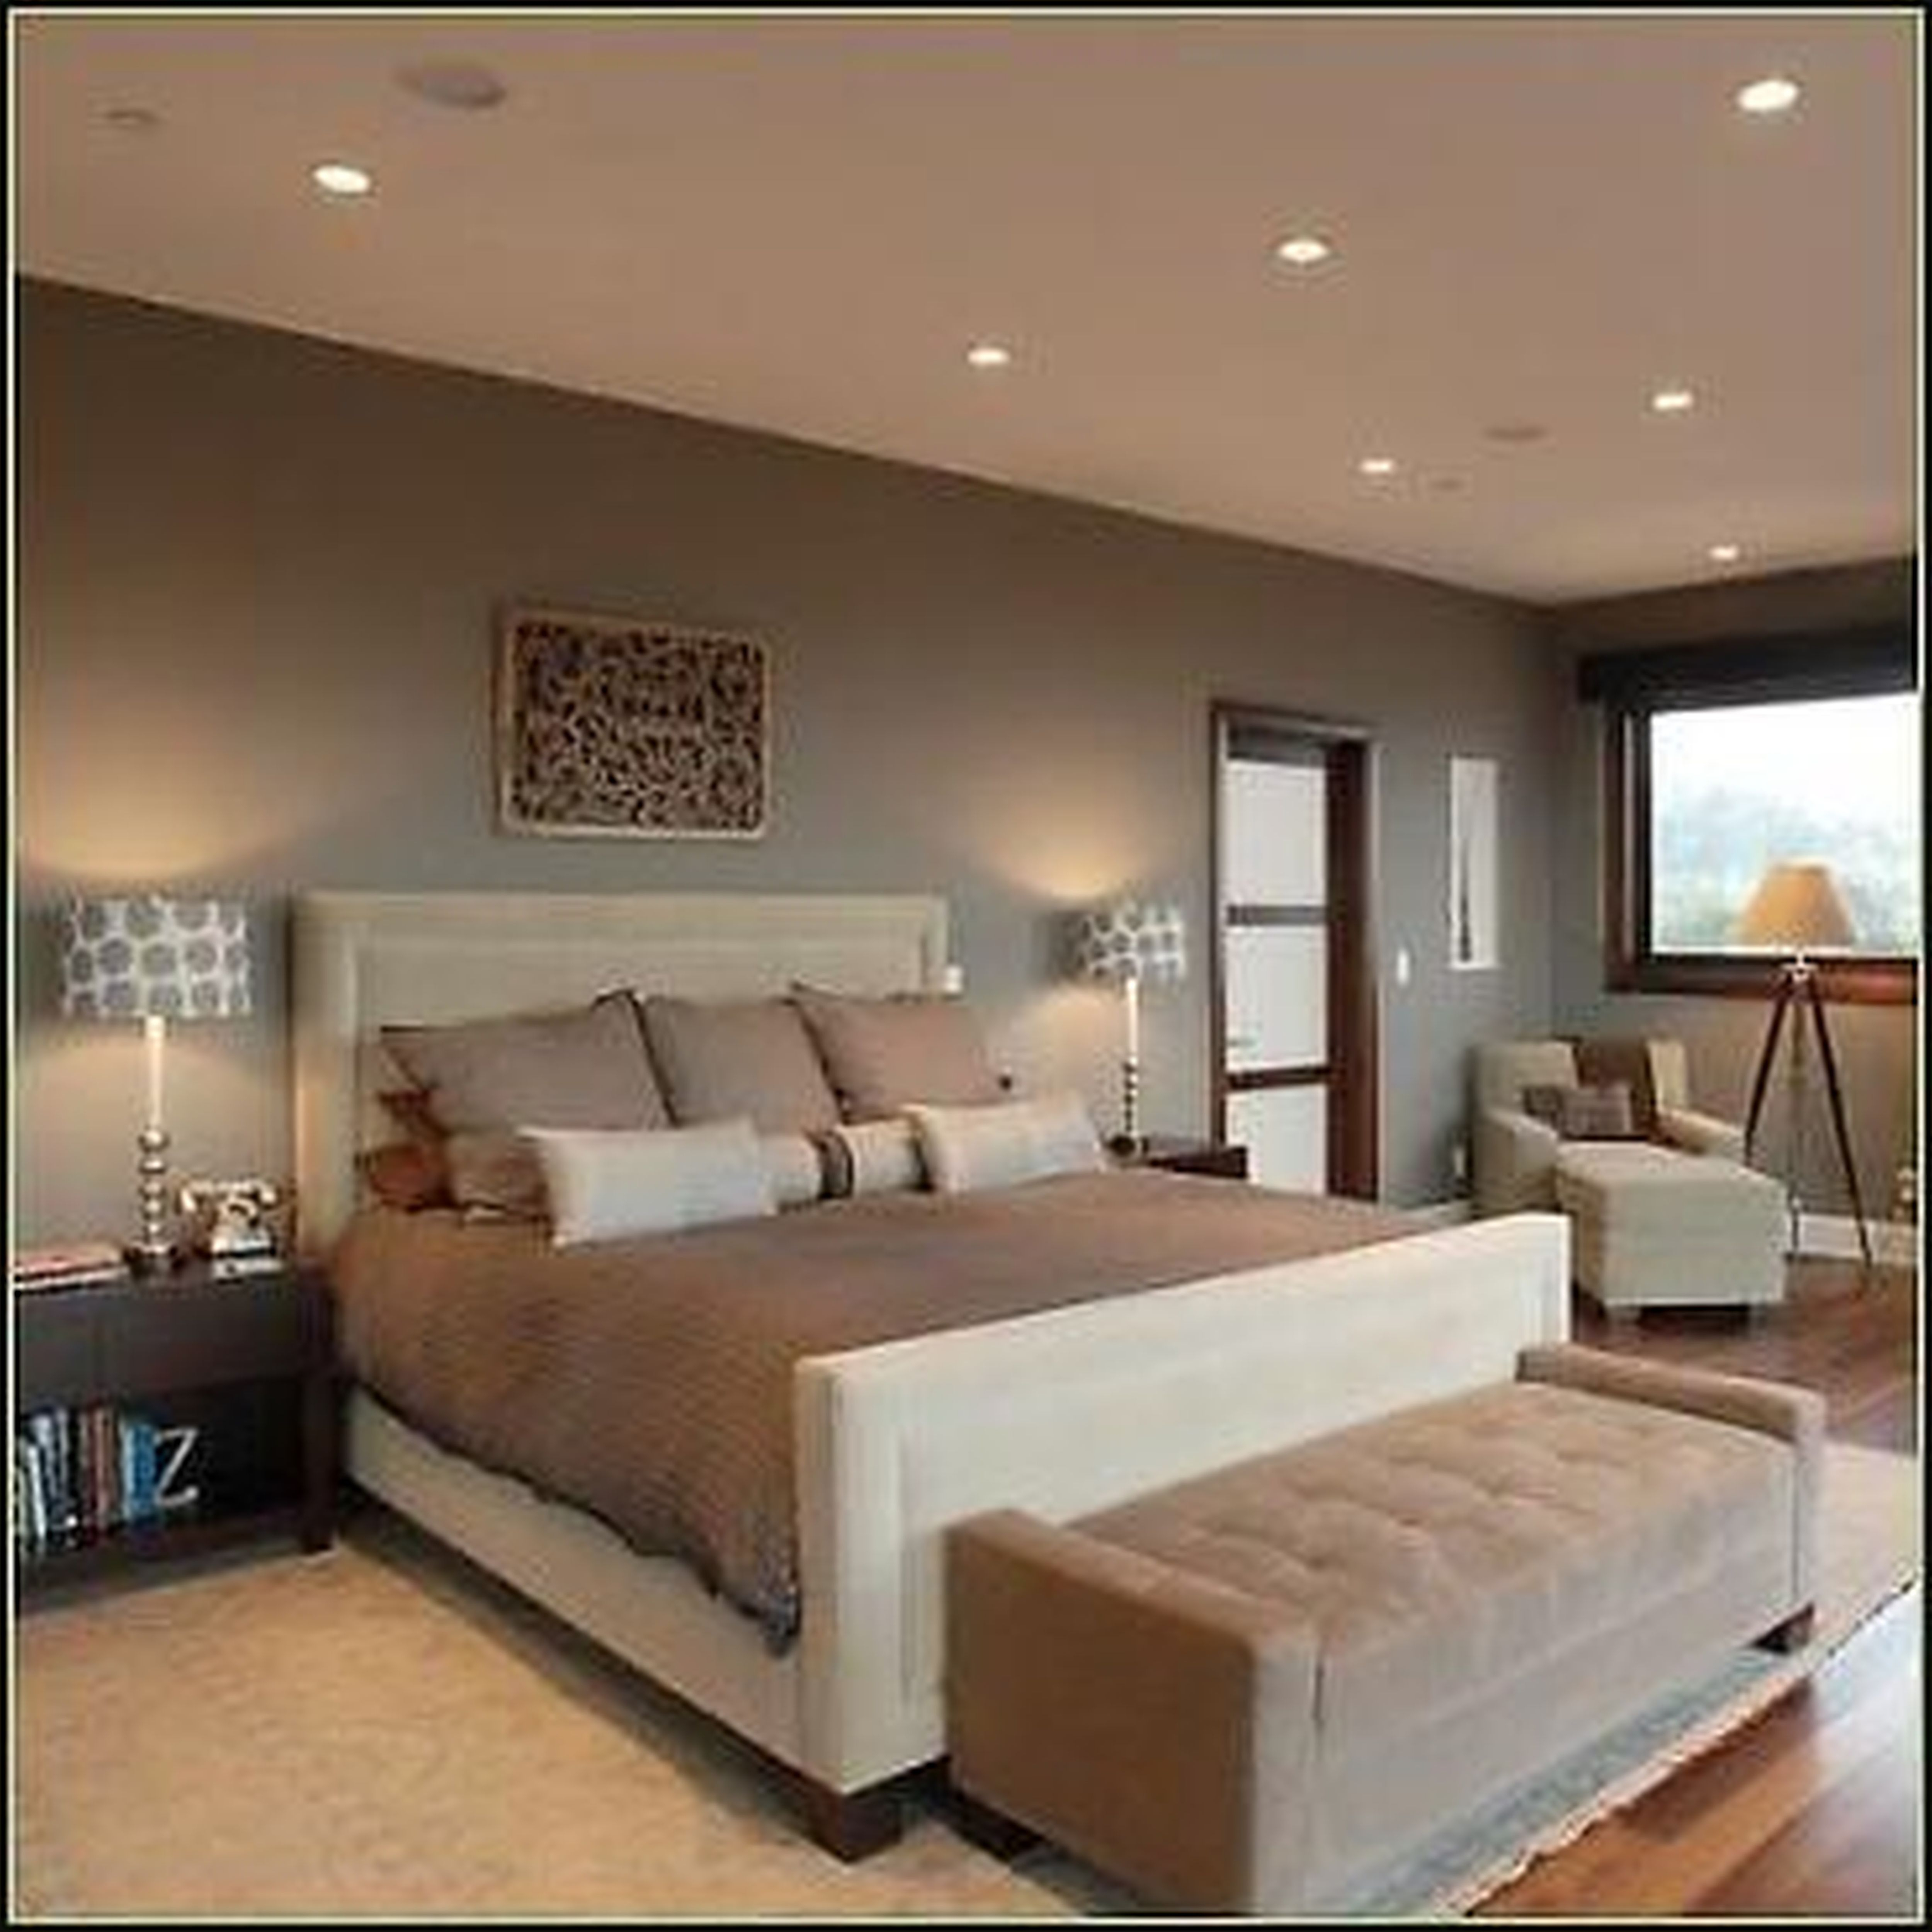 wall paint color schemes, bedroom ideas wall color bedroom paint